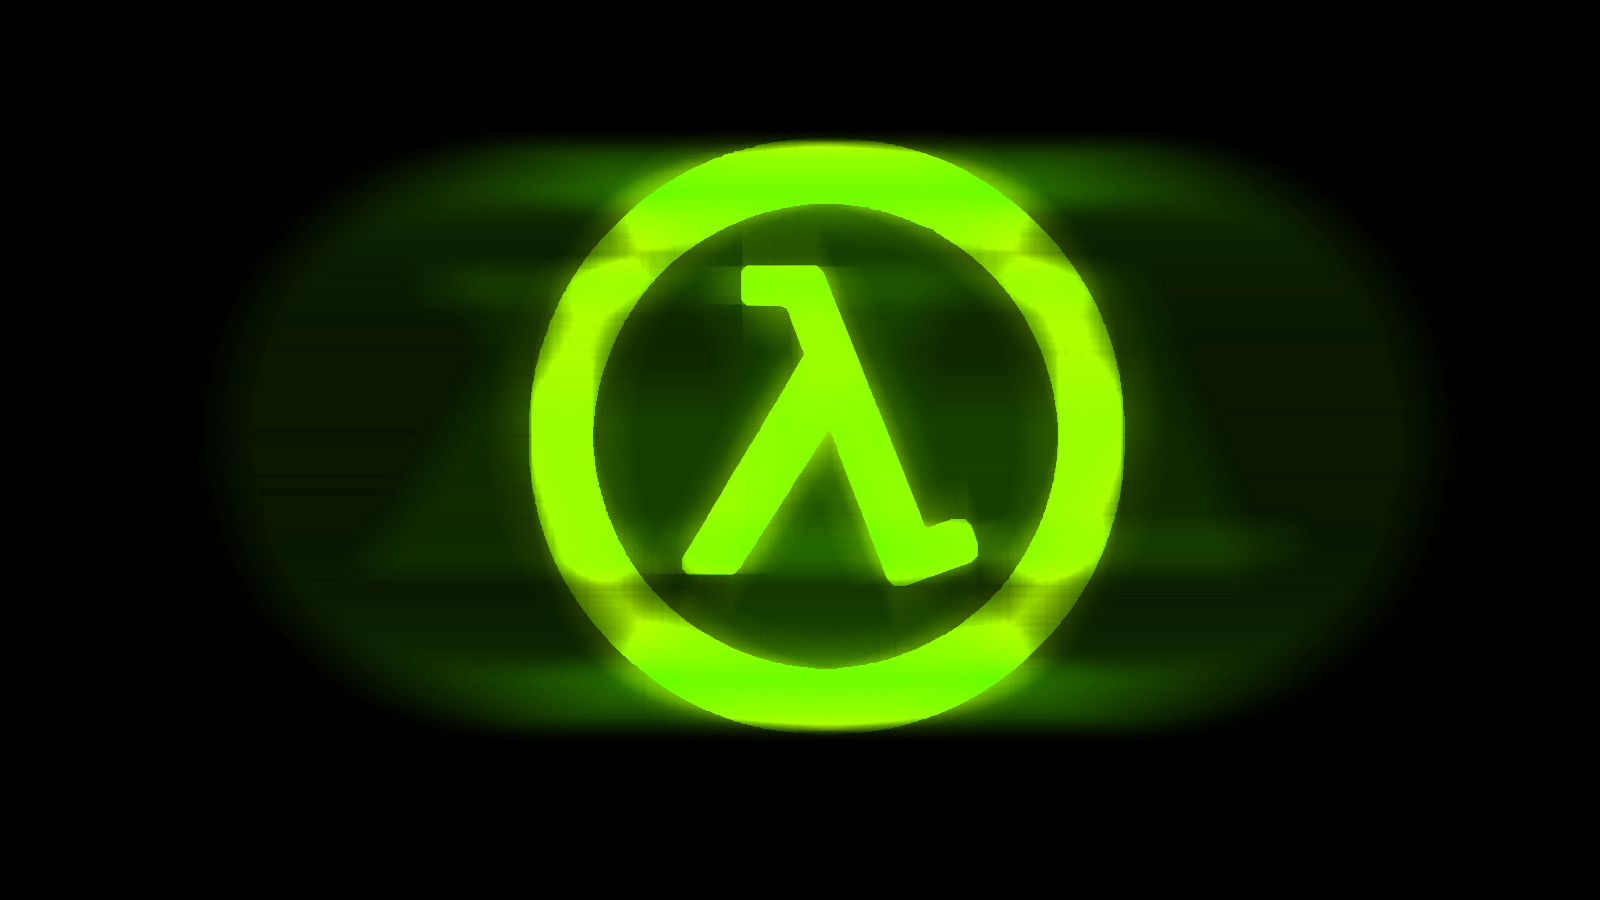 Half Life Logo Wallpaper Green By Toks1c On Deviantart